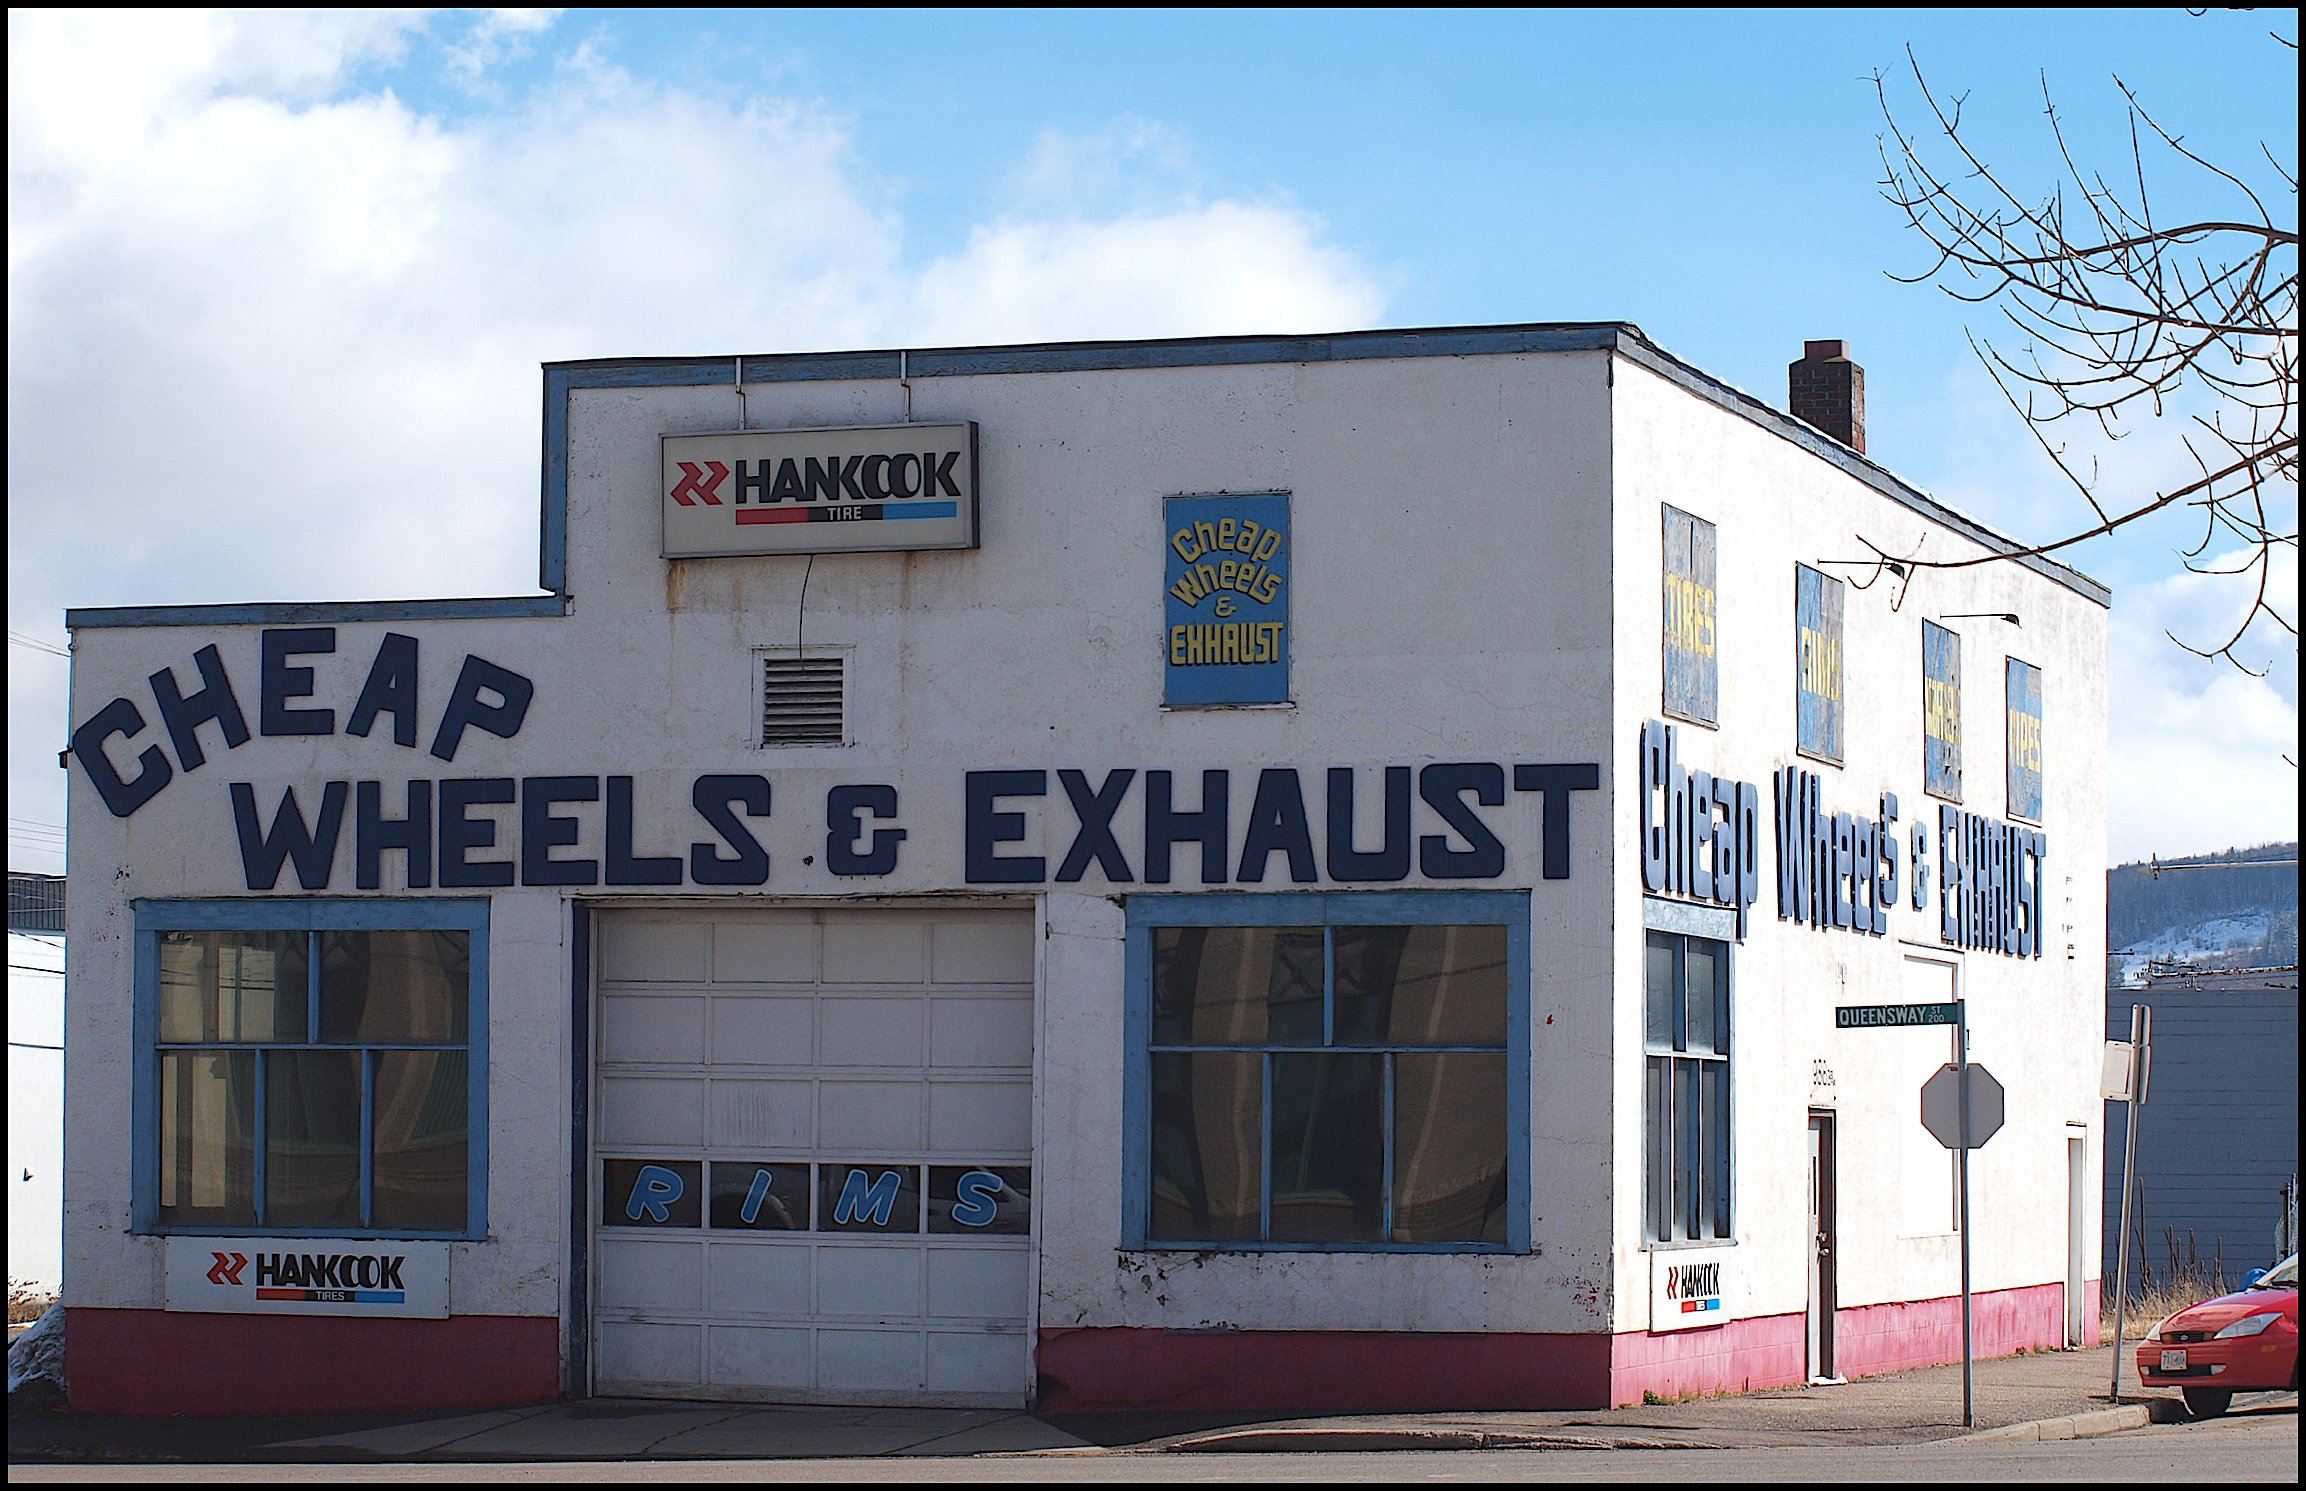 Witness a hot shot of PG's most enthralling Muffler shop right here @ CFUR!